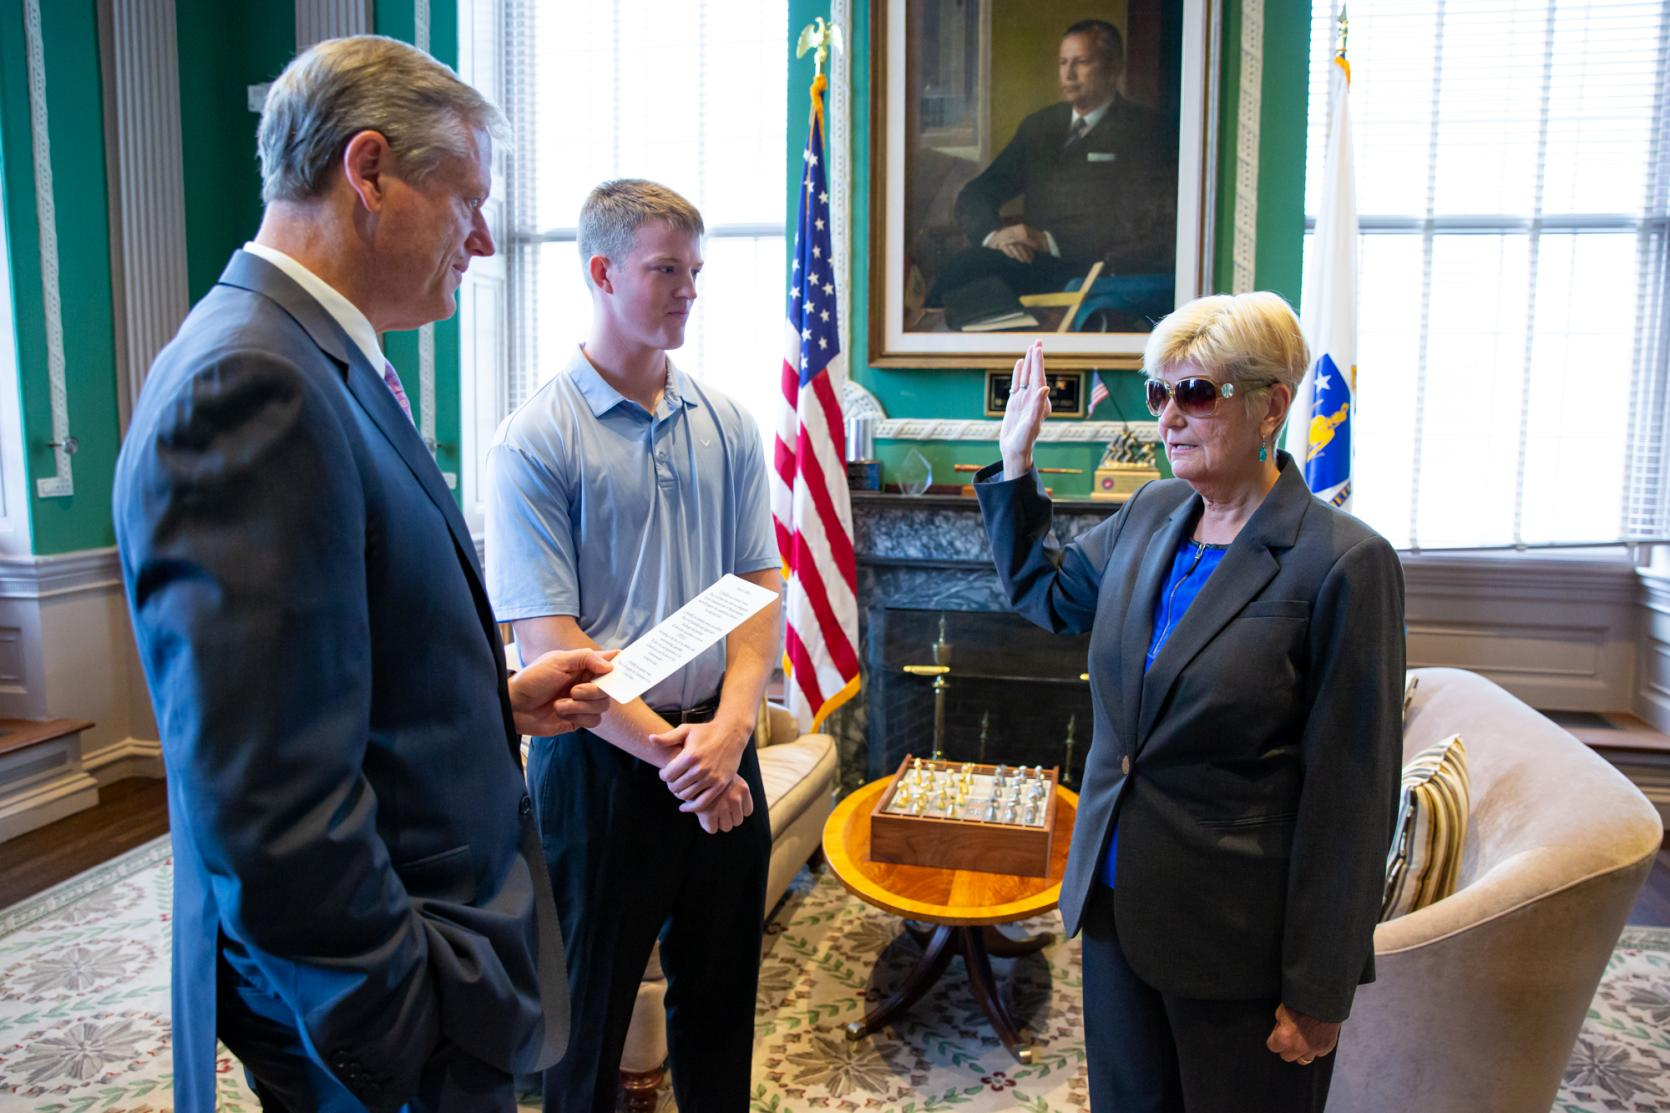 Governor Baker appoints Mary Mahon McCauley Director of the Massachusetts Office on Disability